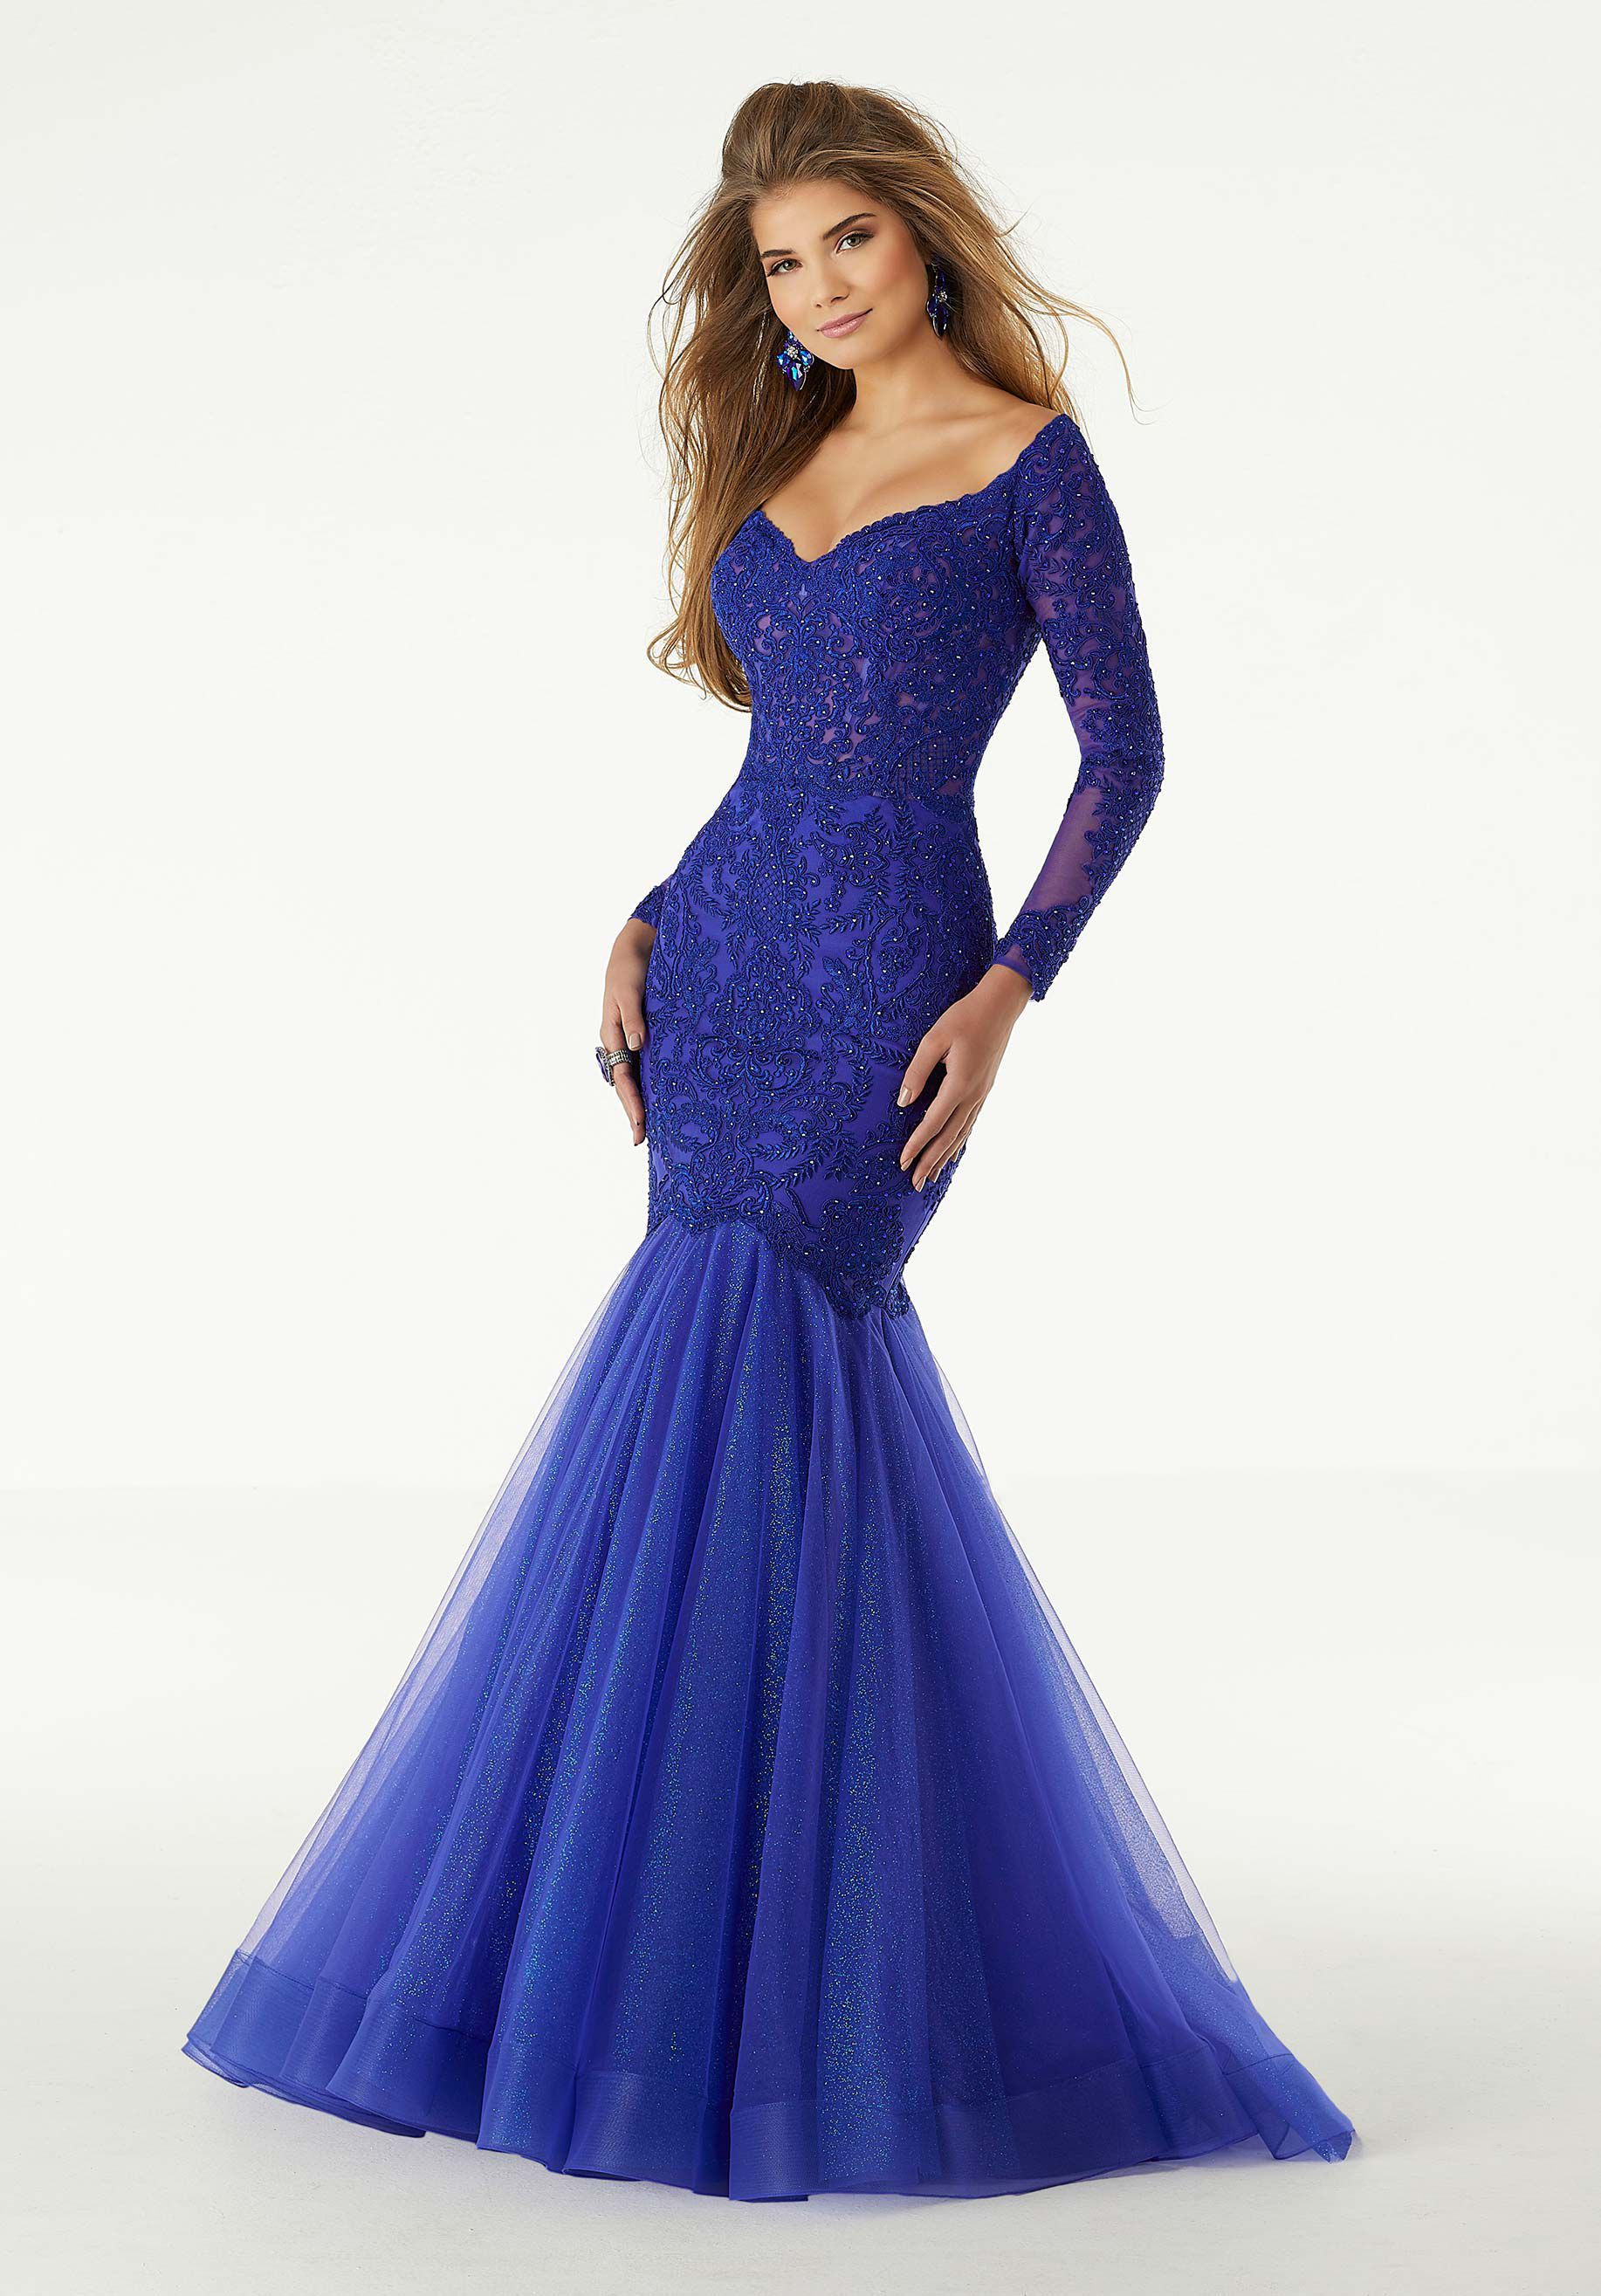 Style 43060 Mori Lee Blue Size 10 Long Sleeve Pageant Tall Height Mermaid Dress on Queenly